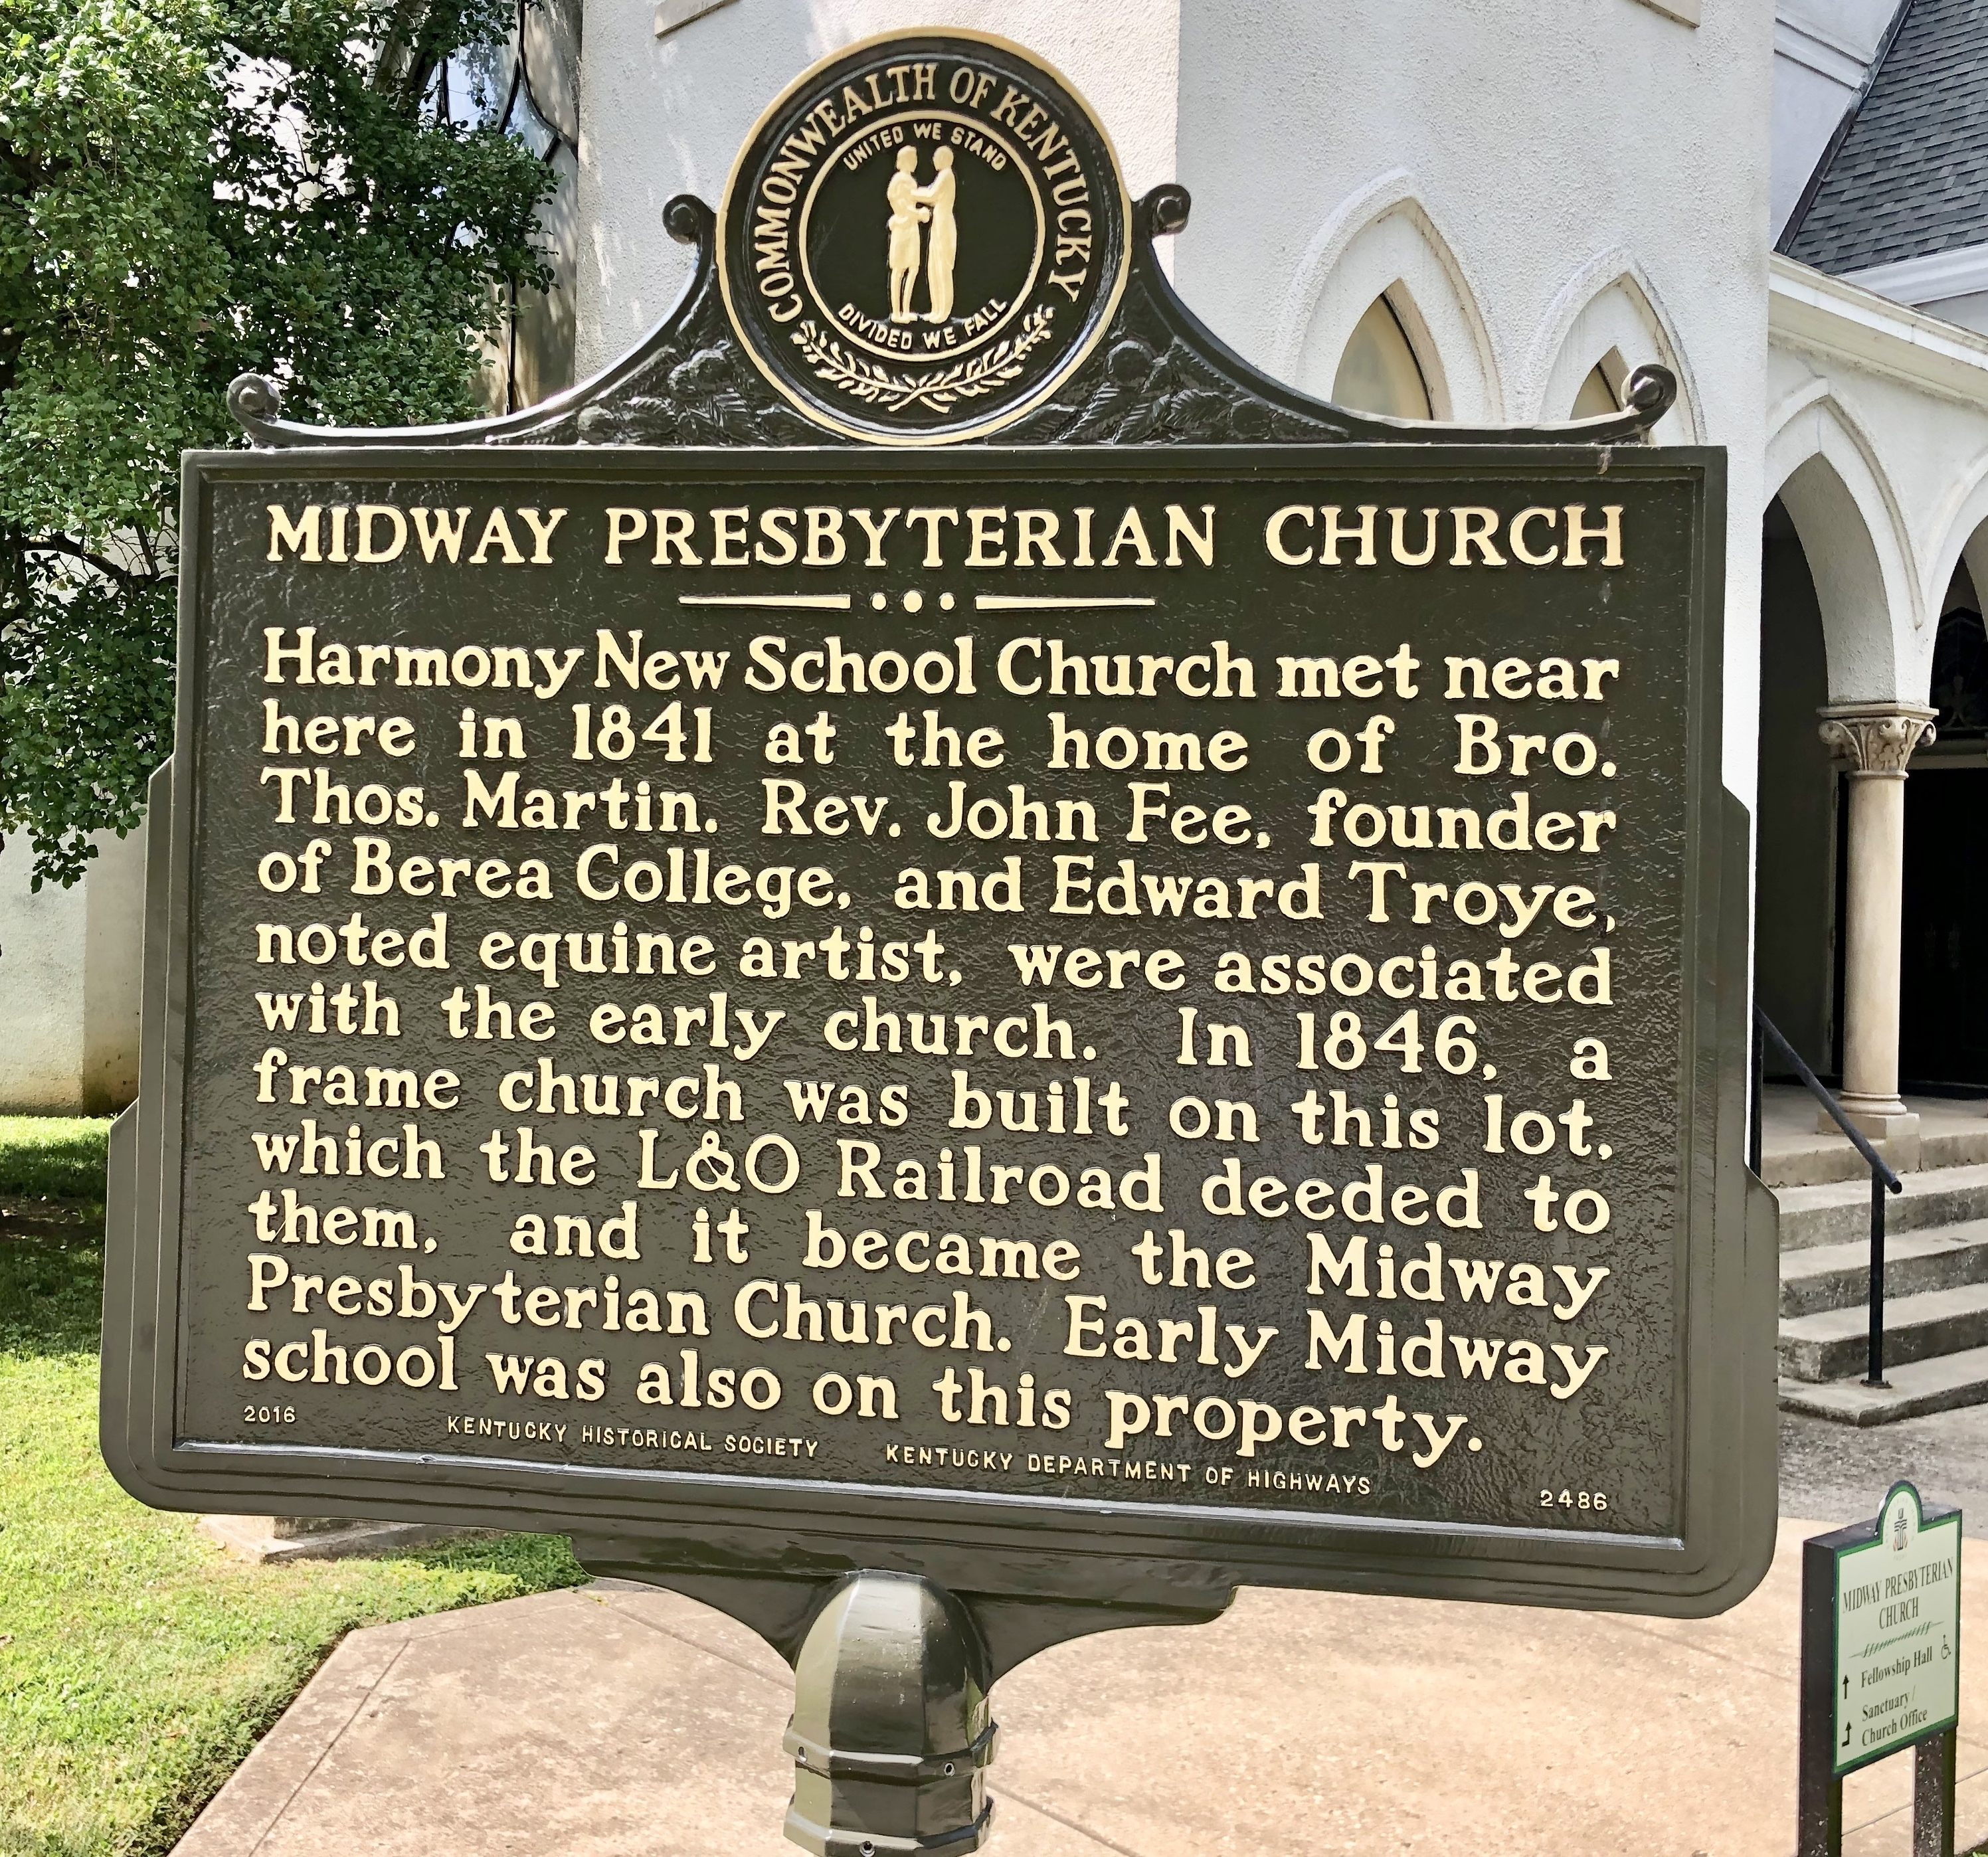 Midway Presbyterian Church Marker (front)